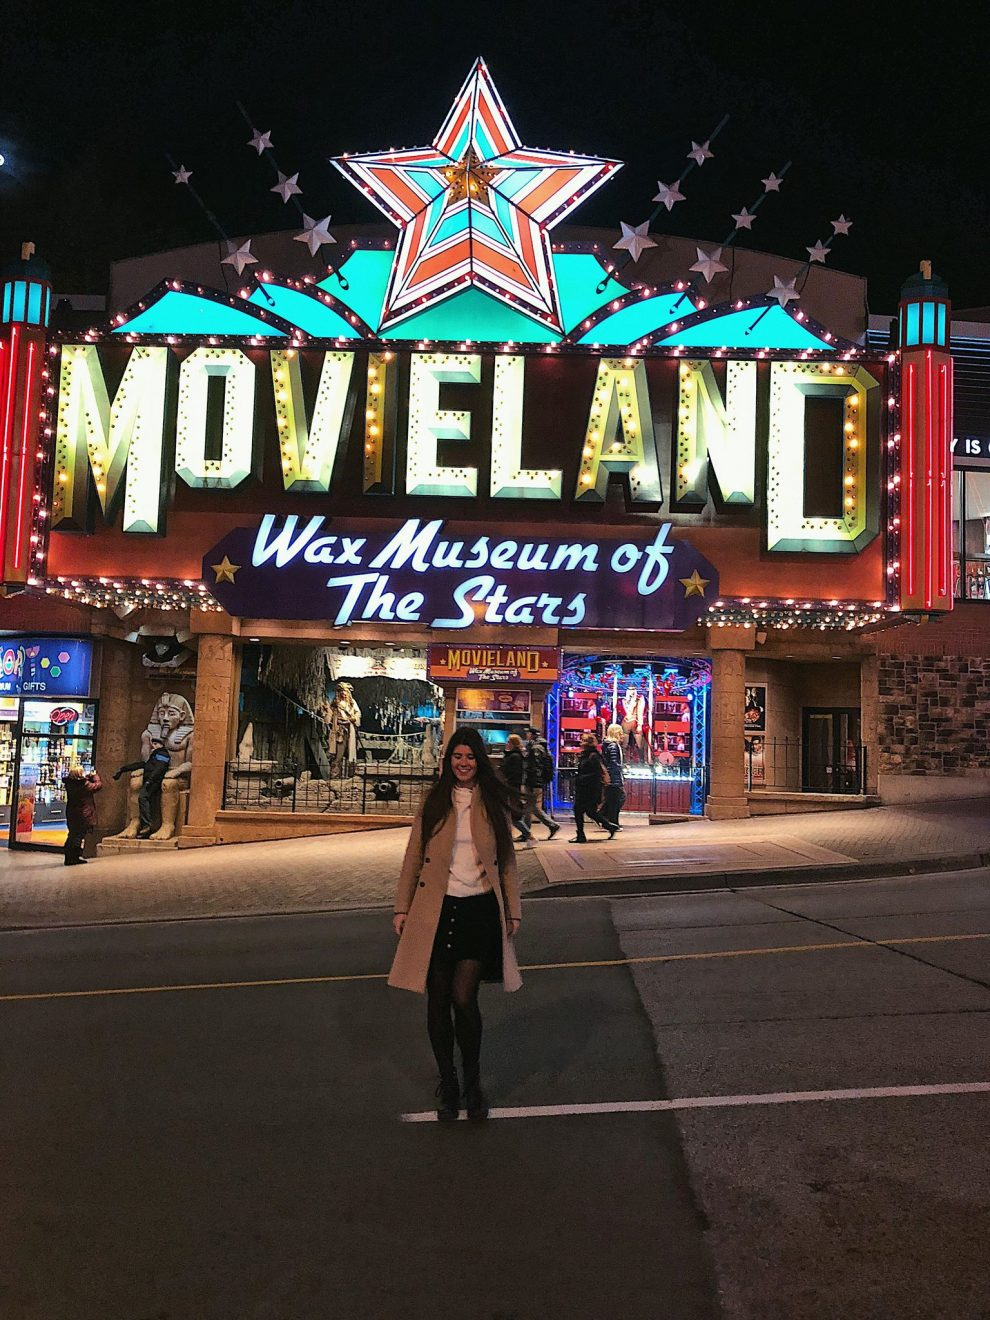 een bezoek aan de Niagara watervallen, tips. Niagara Falls. Clifton Hill, Movieland Wax Museum of The Stars.